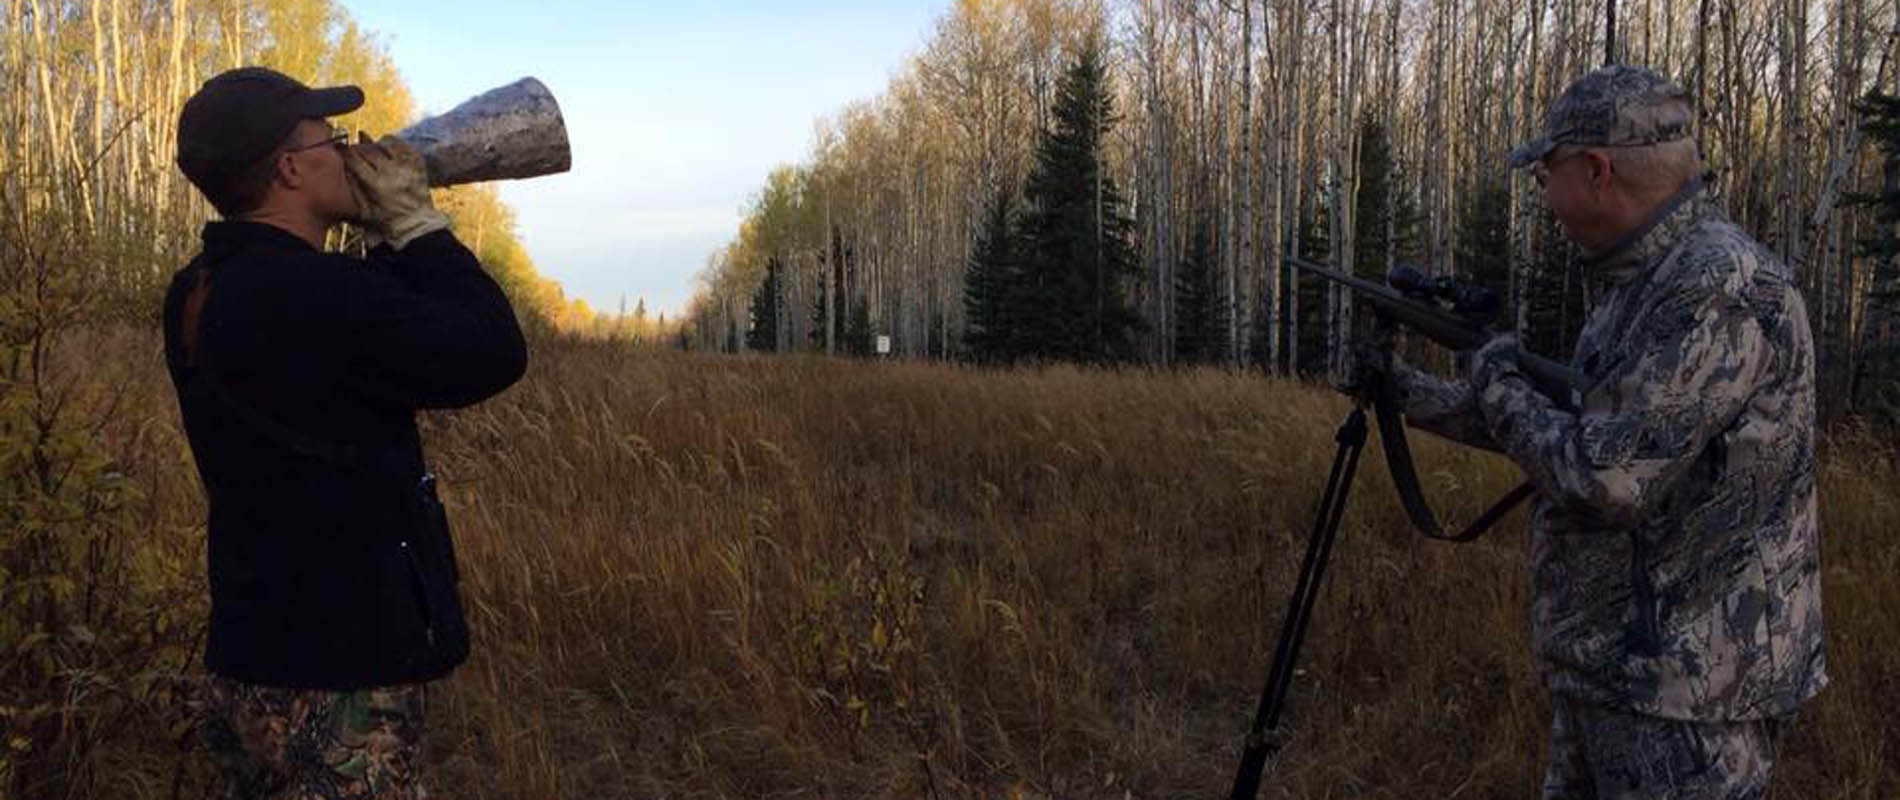 Canada Moose Hunts with Mikes Outfitting